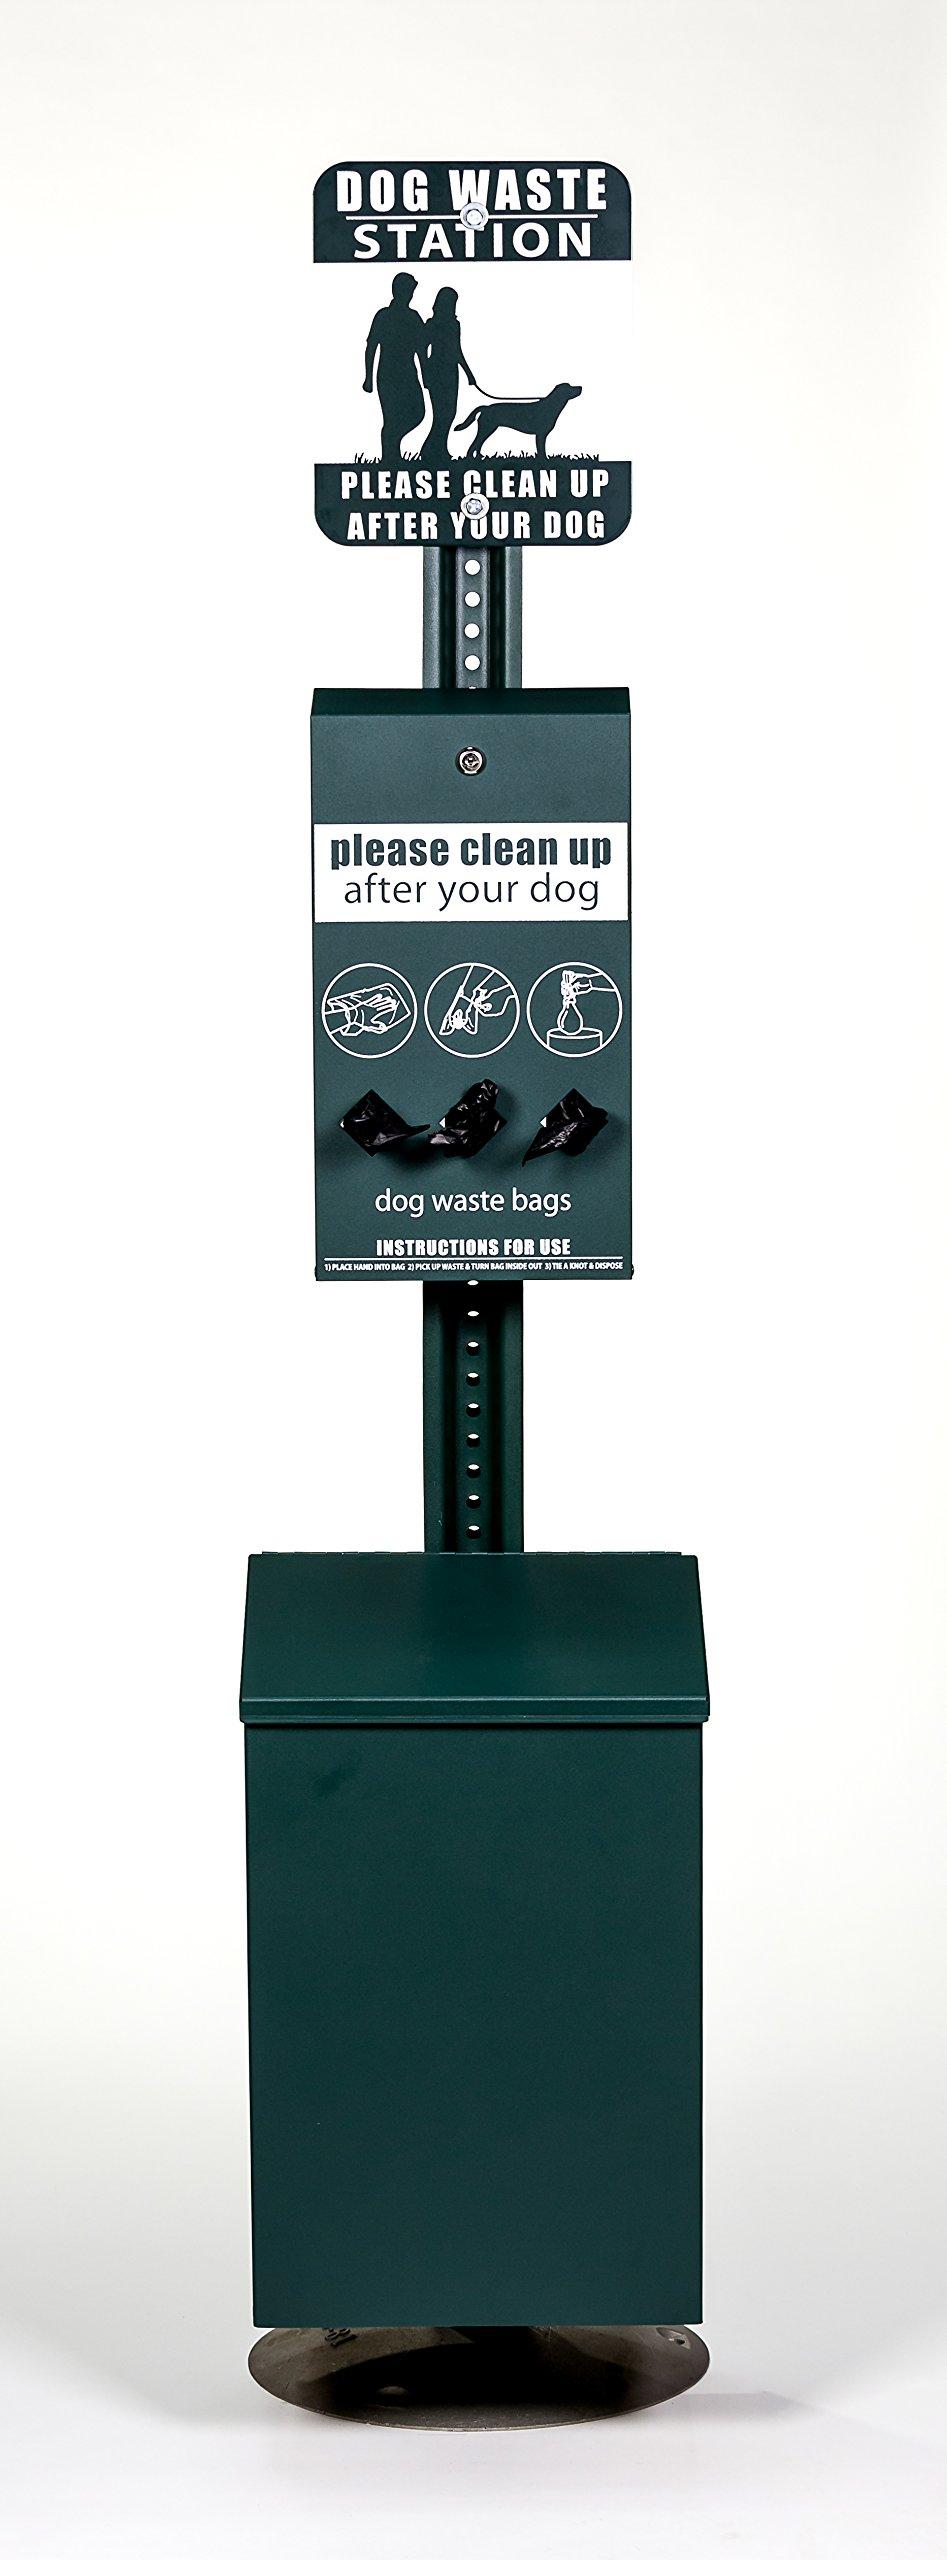 Dog Waste Station - Everything Included - FREE 400 waste bags and 50 can liners - Roll Bag System